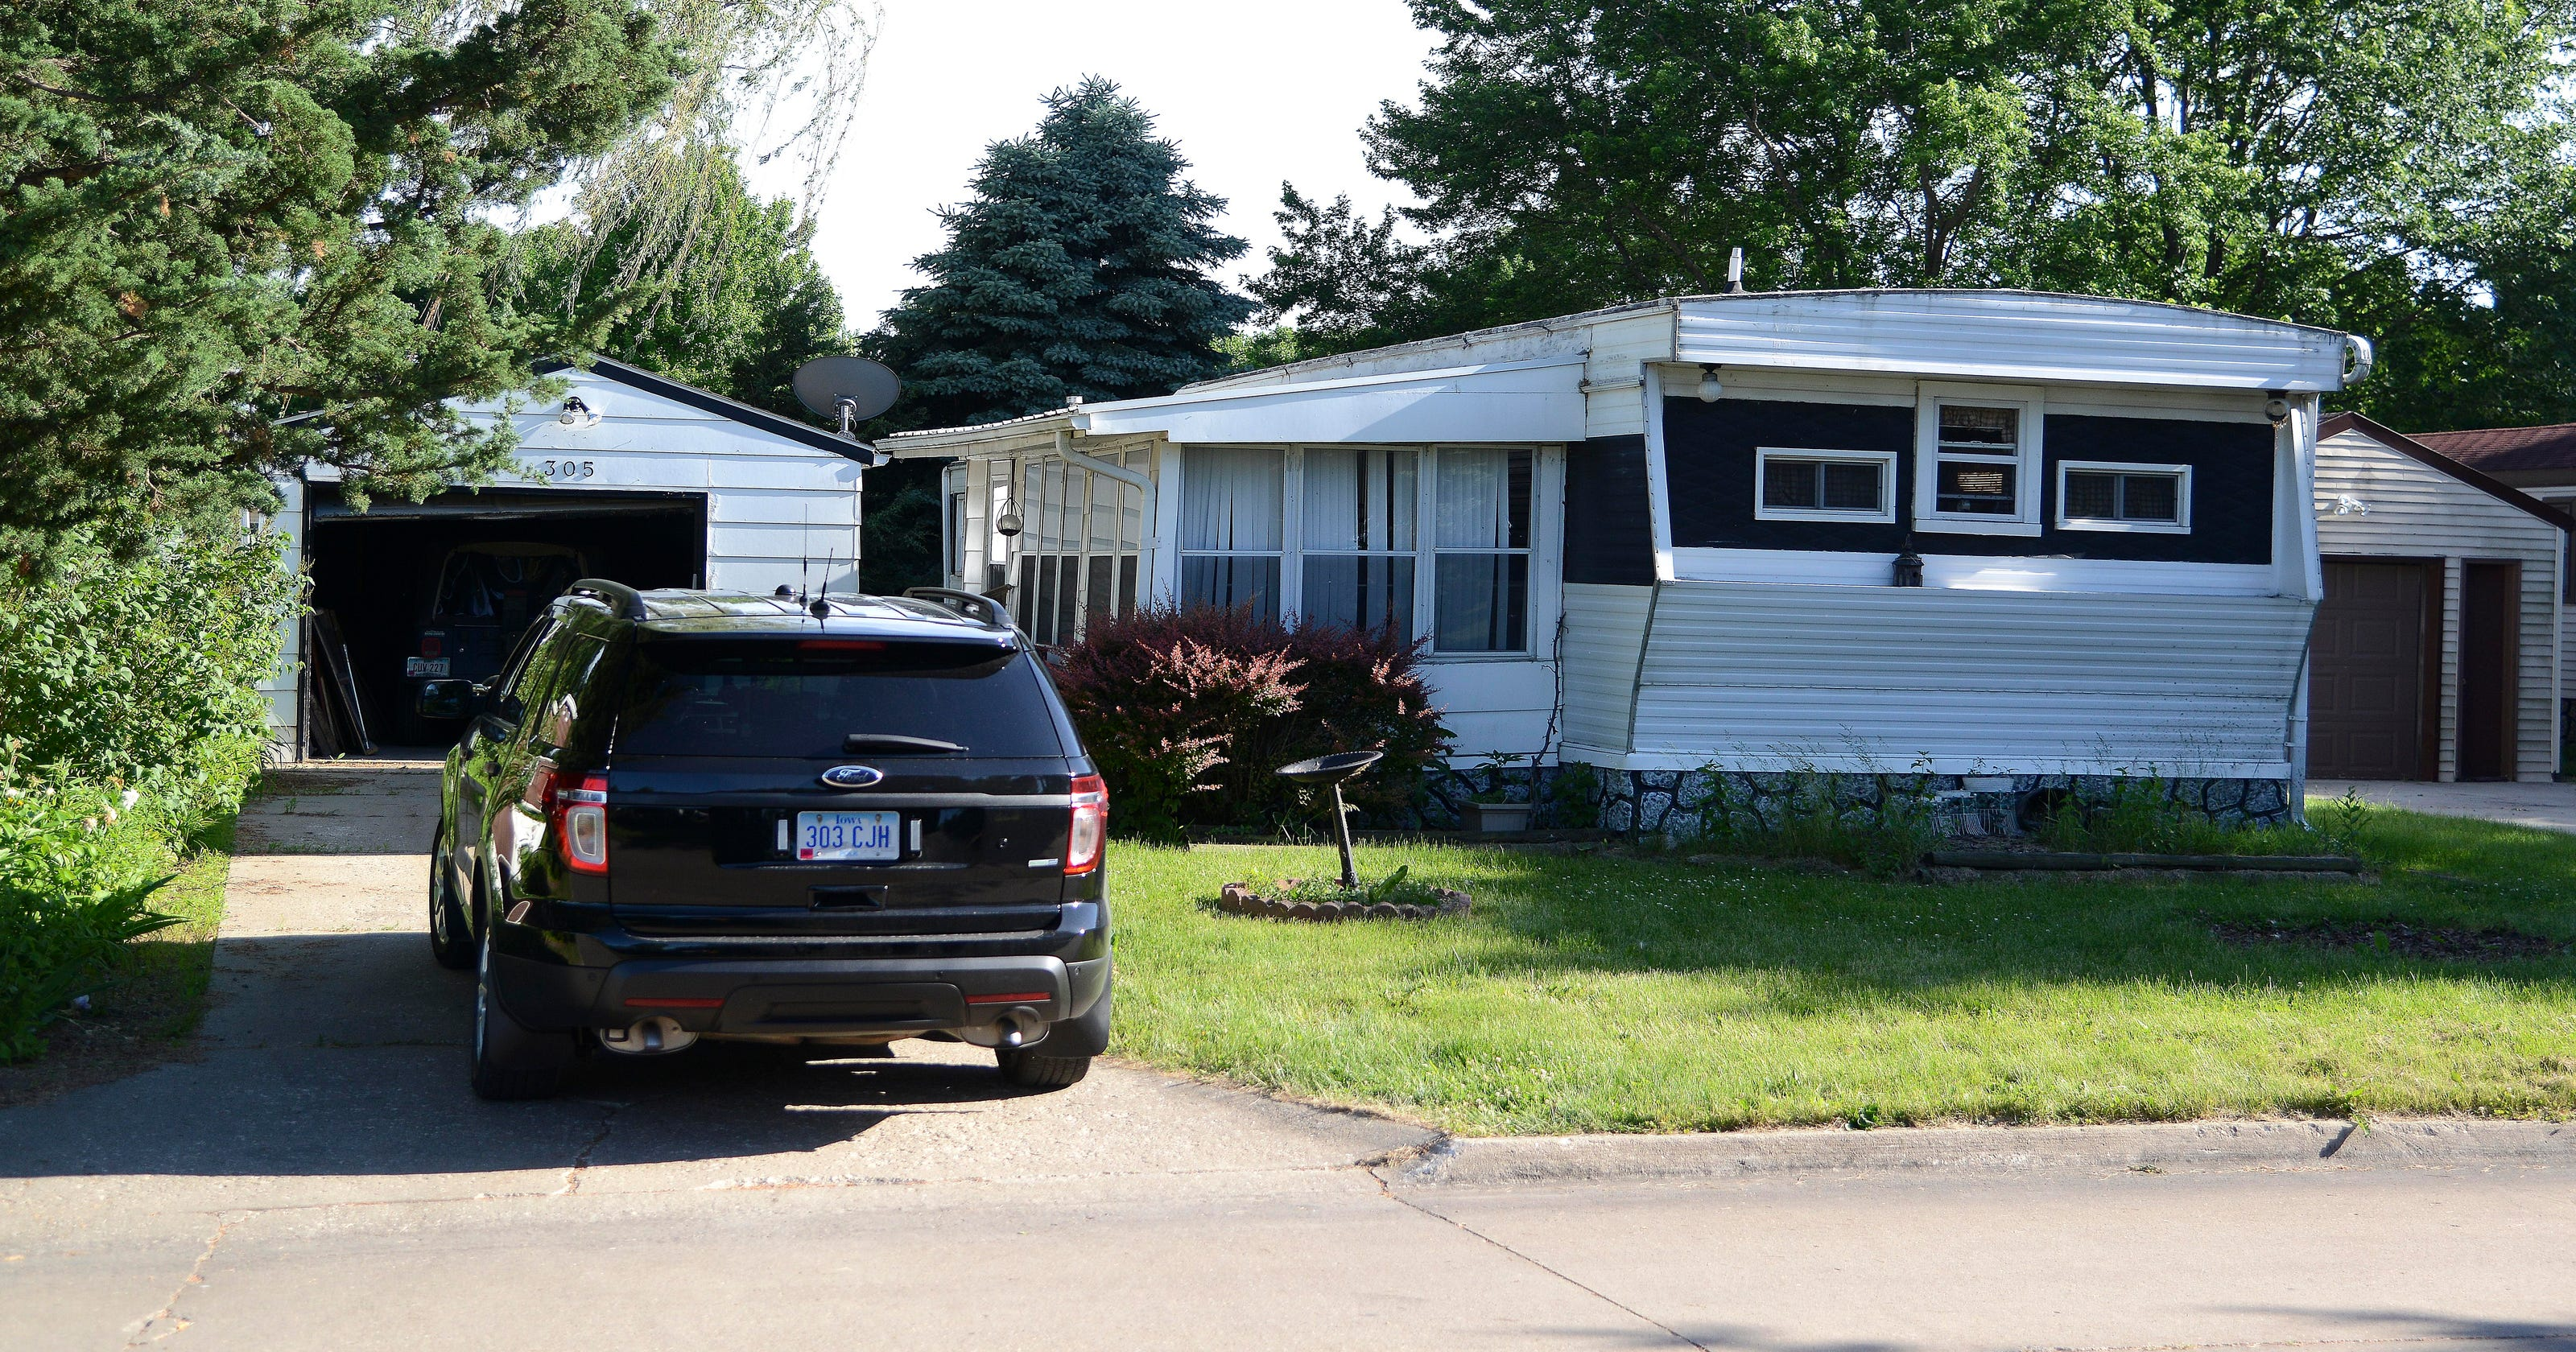 Ankeny Police Rule Mobile Park Home Deaths Suicide Undetermined